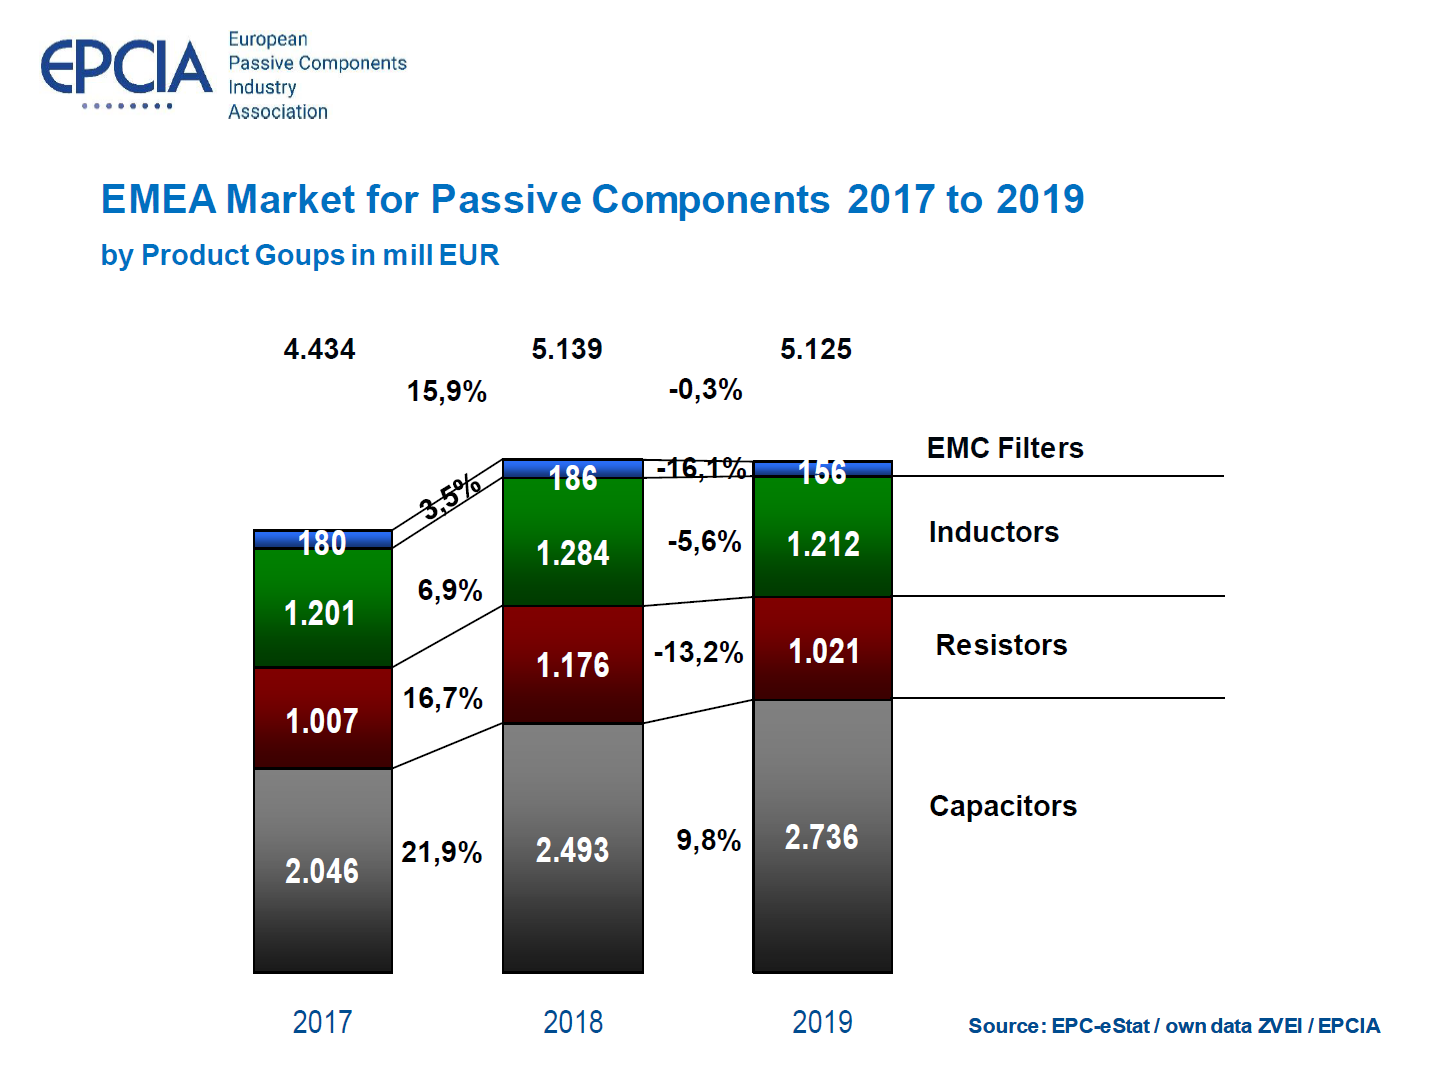 EMEA Market Data for Passive Components 2017 to 2019